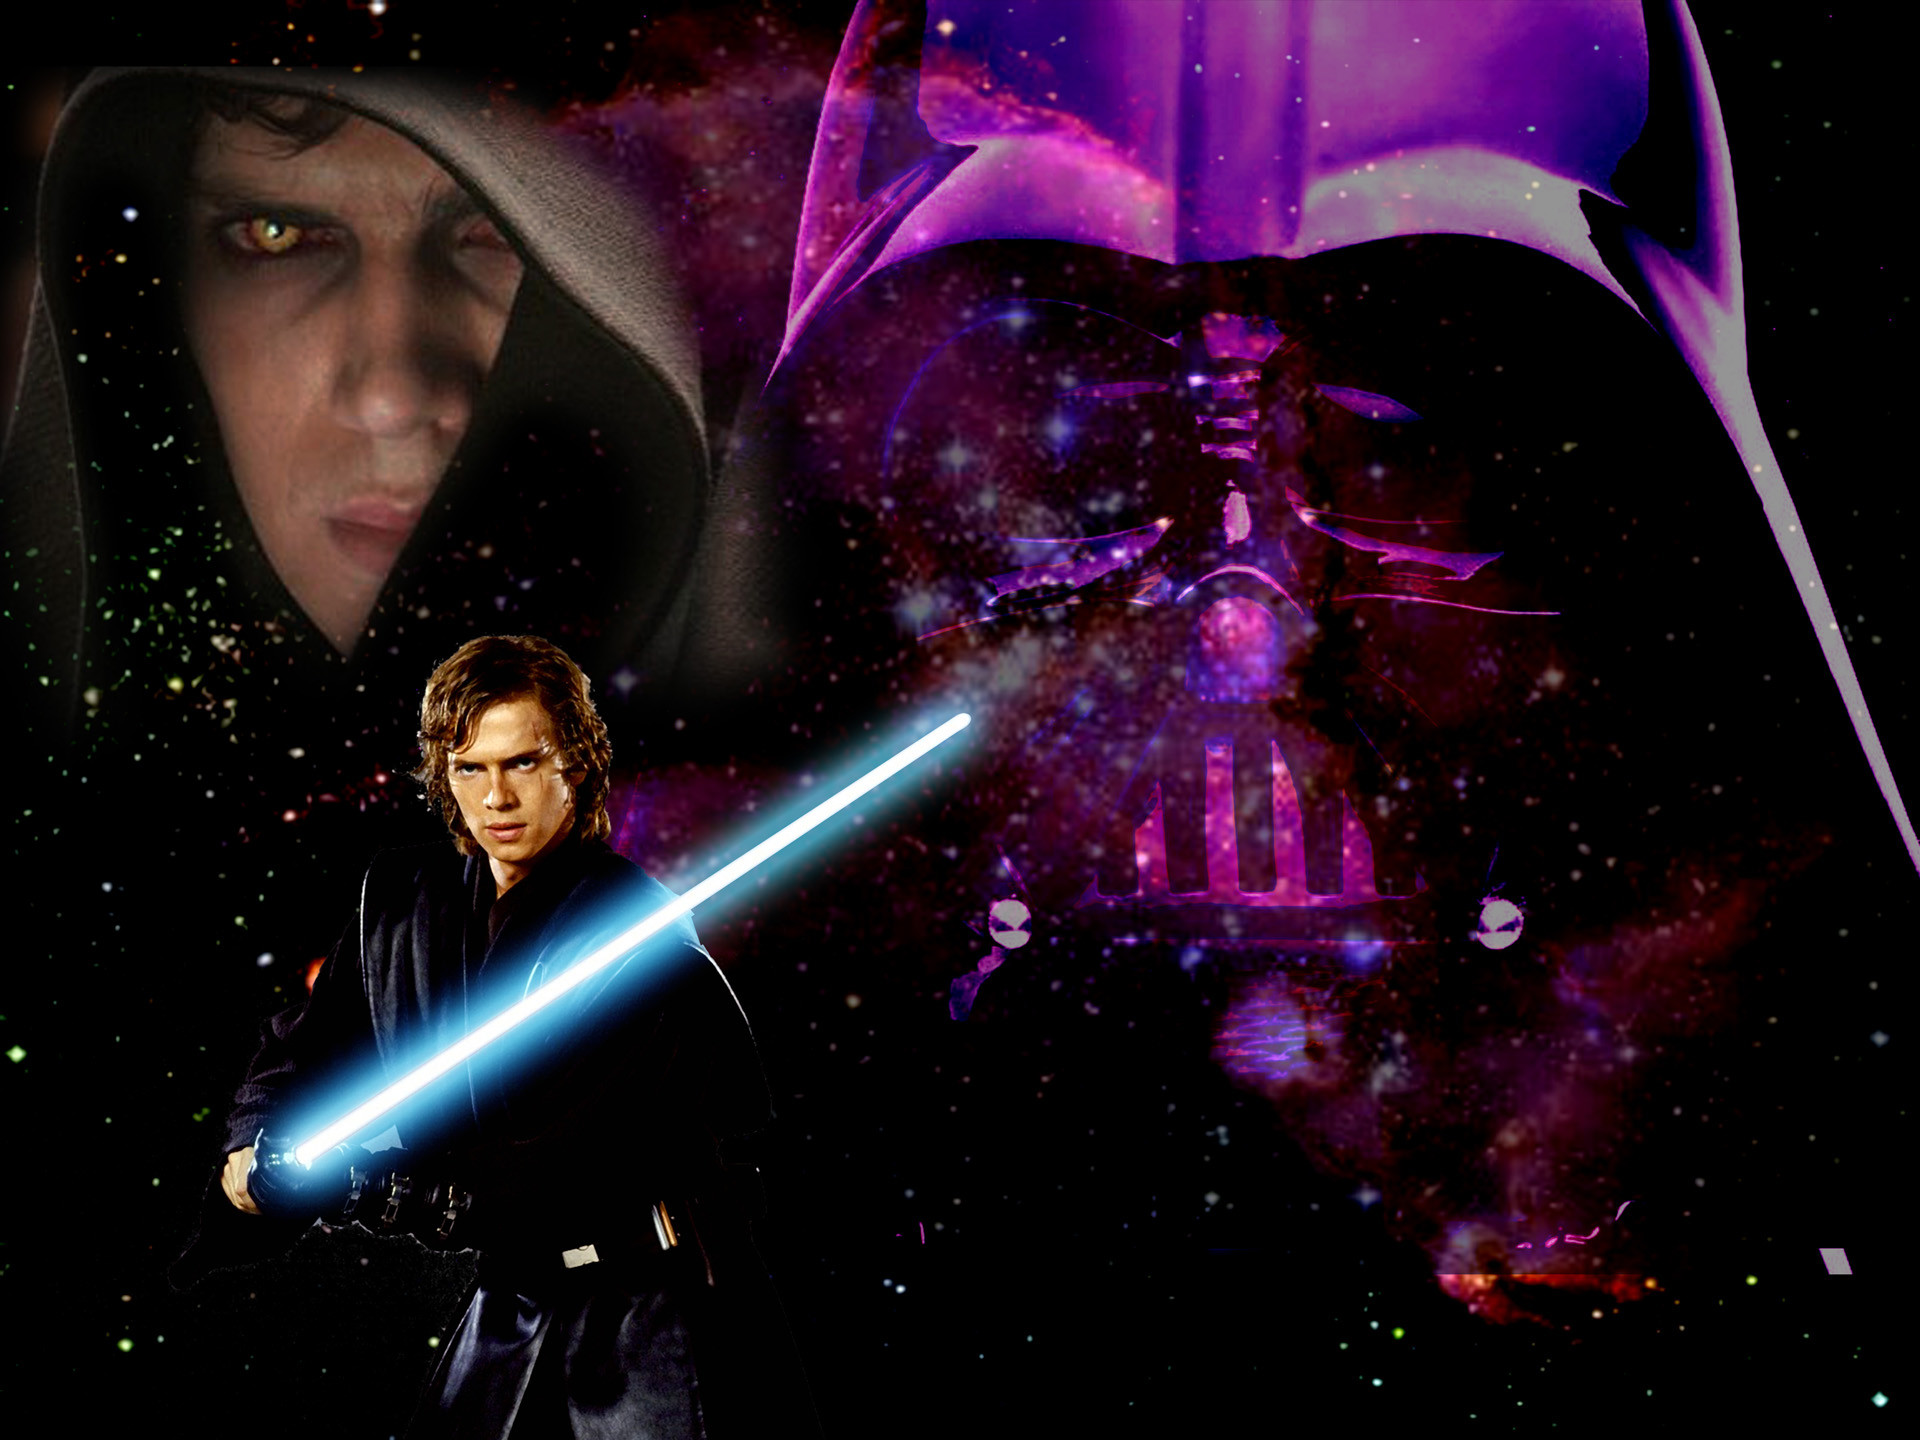 Star Wars Anakin Skywalker Wallpaper: Anakin Skywalker Wallpaper ·①